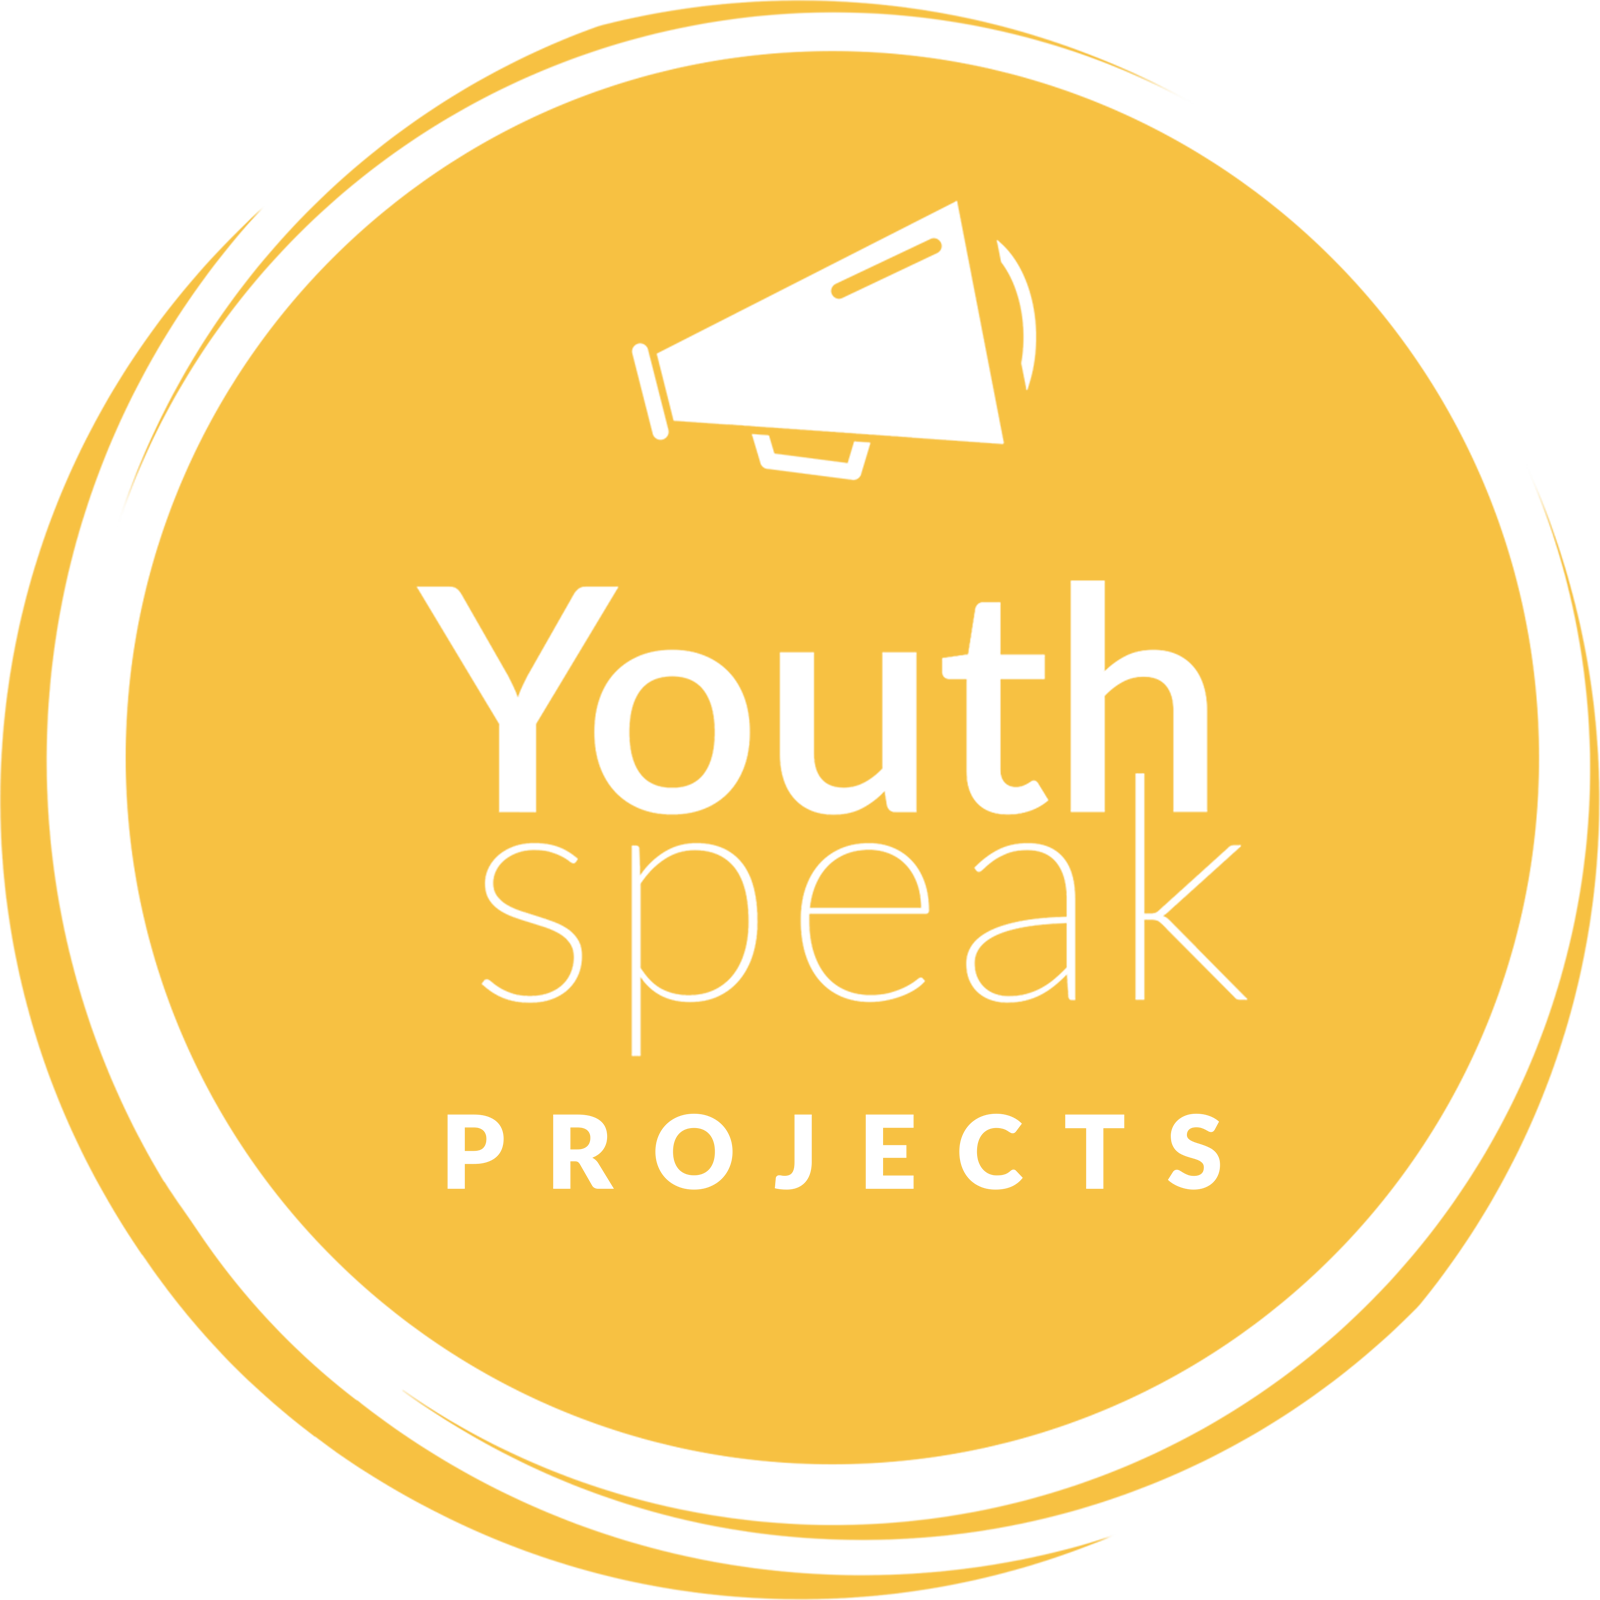 ys-projects-logo-2_new